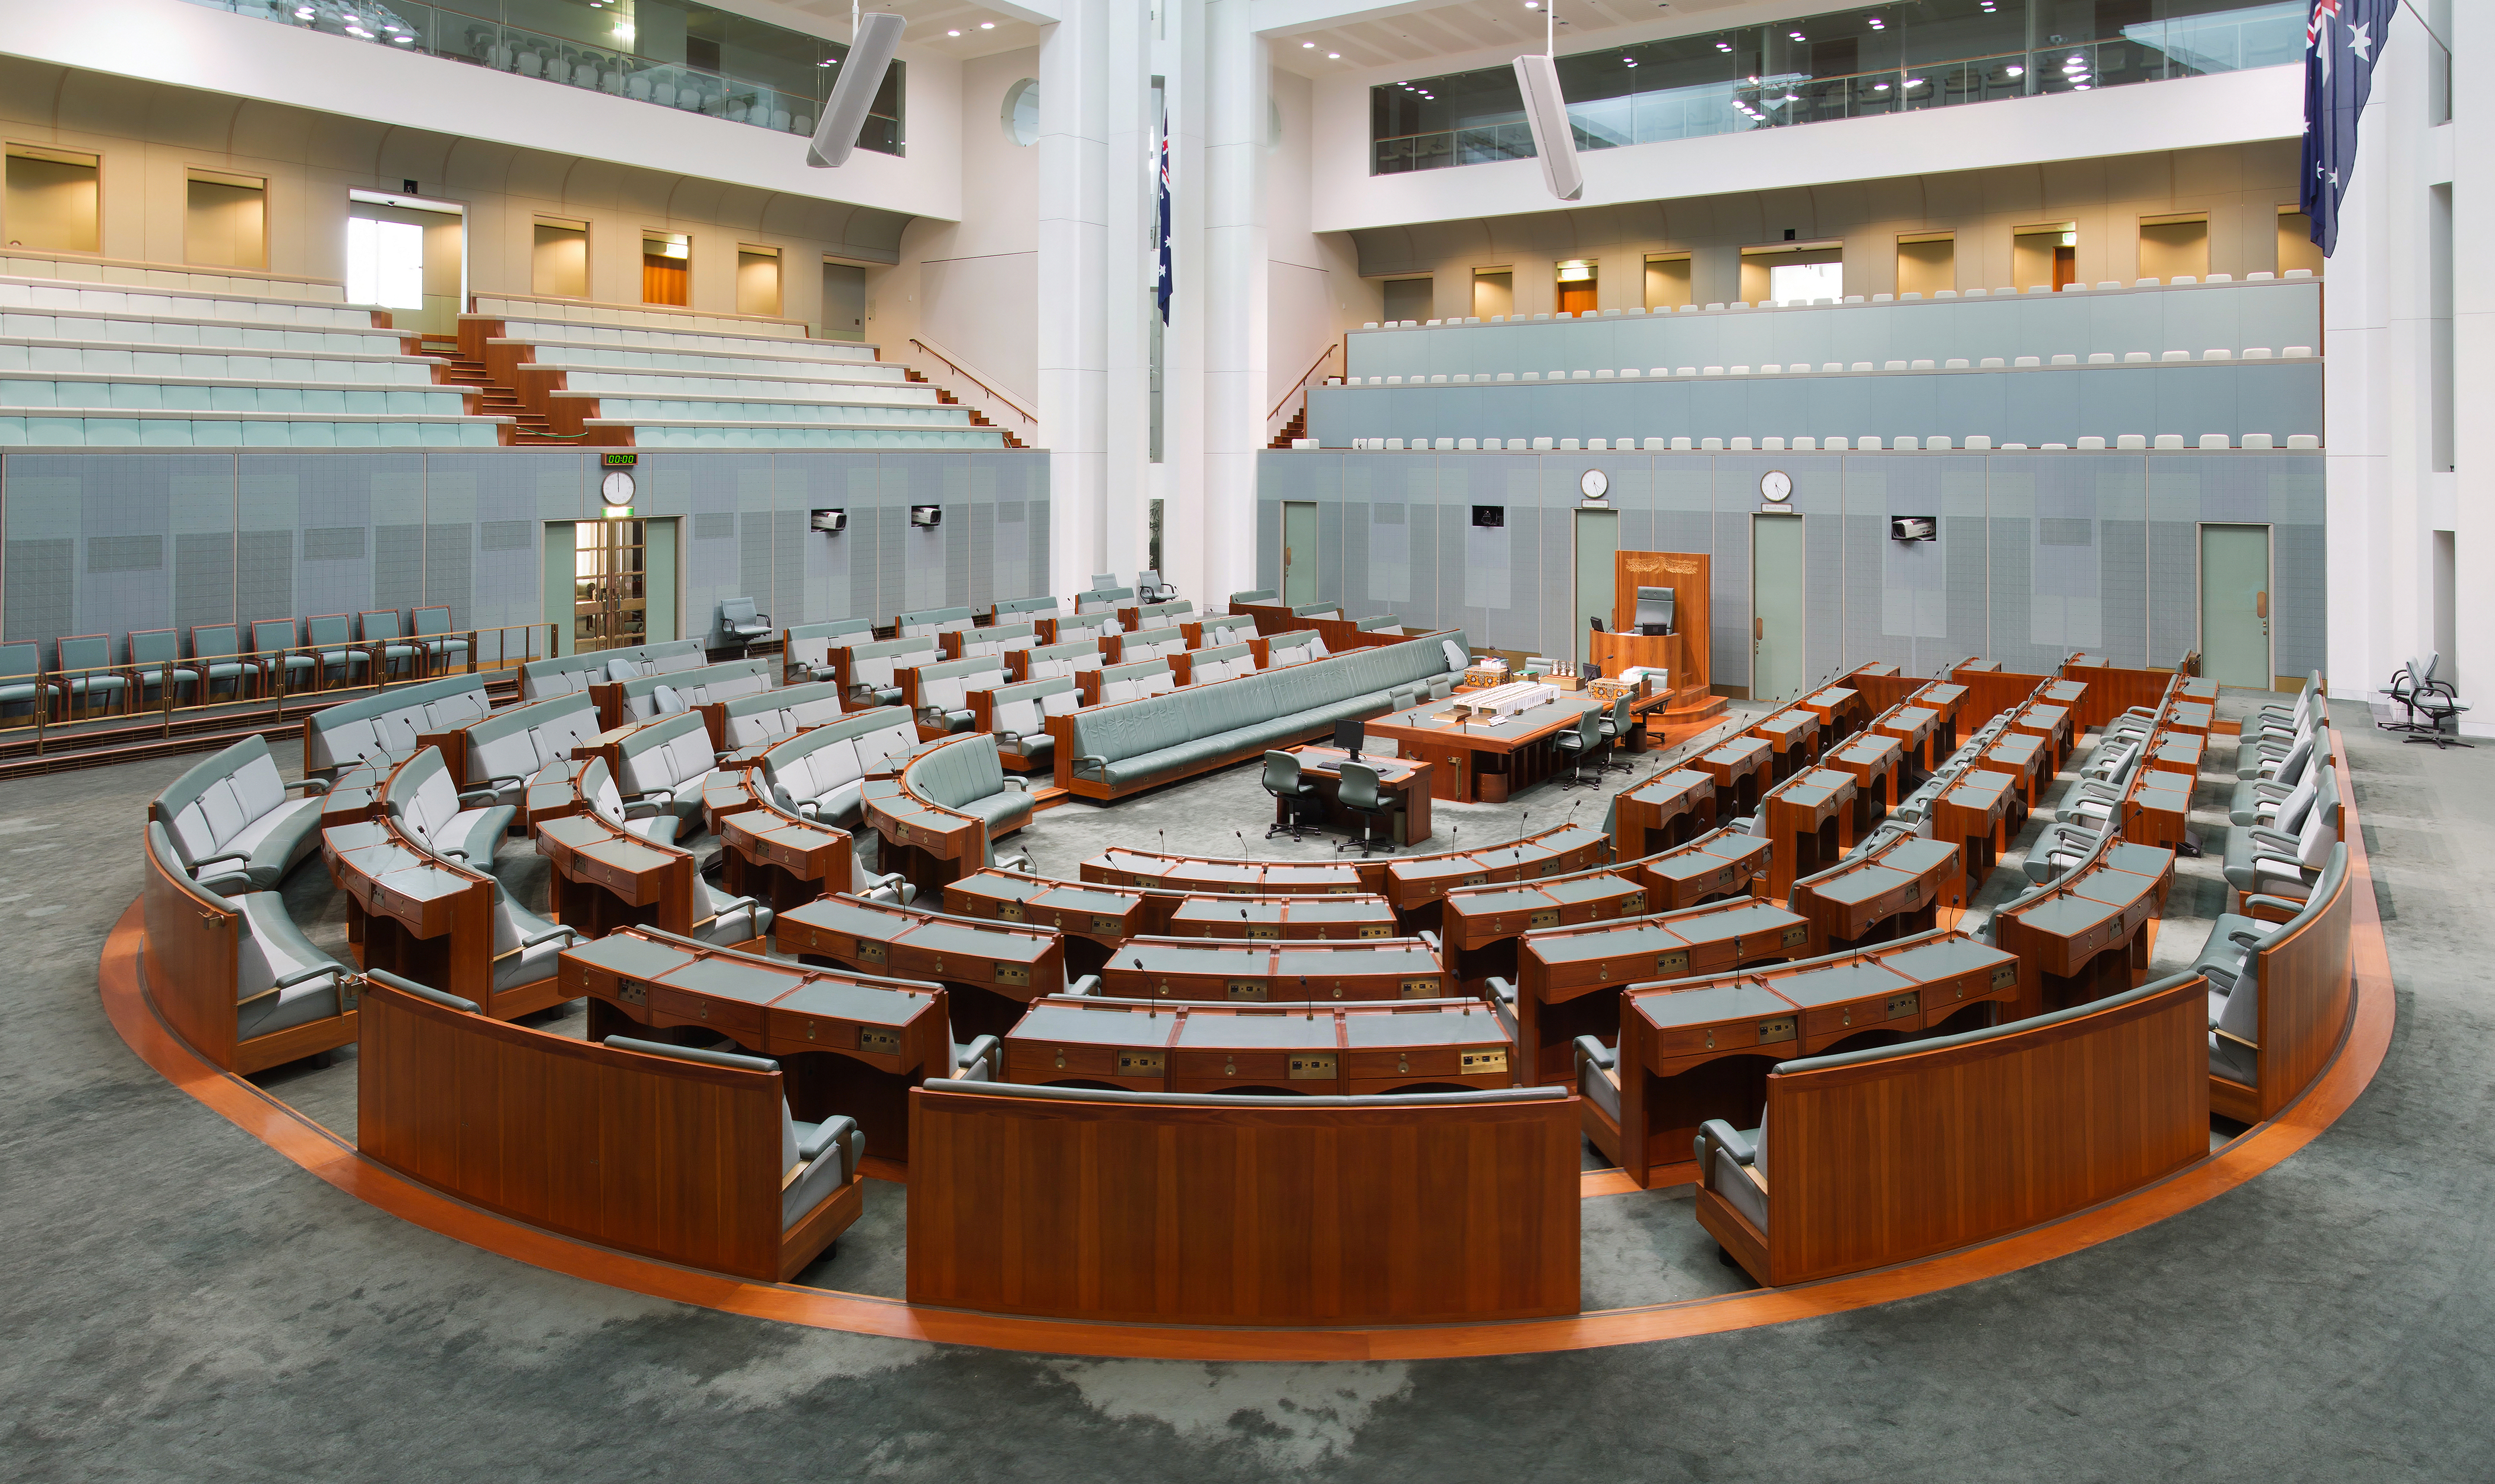 Australian House of Representatives   Parliament of Australia - 37+ Pictures Of Australian Parliament House  Background